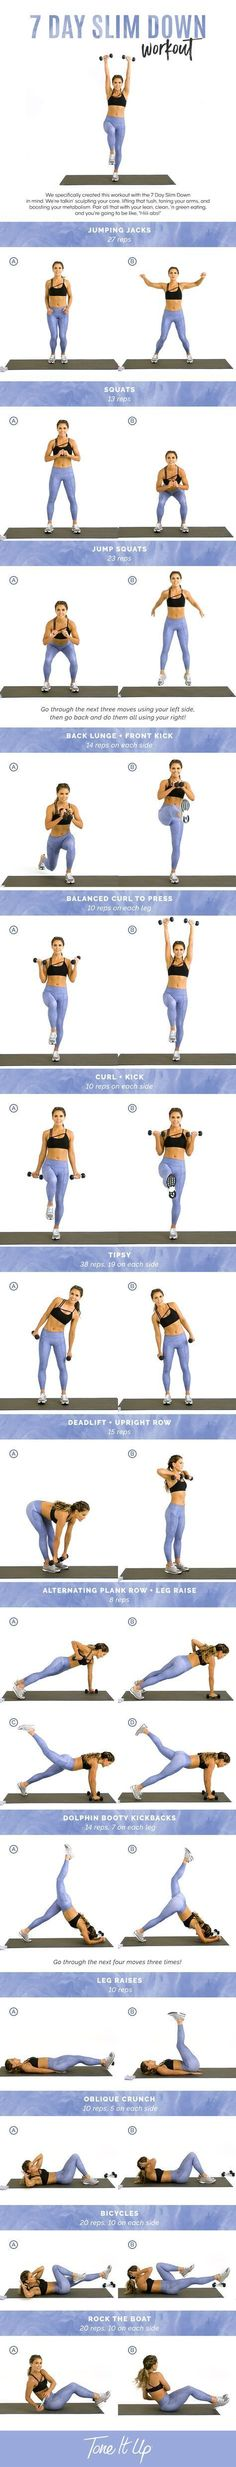 Tone It Up 7 Day Slim Down Workout! Being overweight or clinically obese is a condition that's caused by having a high calorie intake and low energy expenditure. In order to lose weight, you can either reduce your calorie intake, or else exercise regularly and reduce your calorie intake at the same time. It's always more beneficial to exercise as well. Many people don't exercise correctly when they want to lose weight. They think if they do high-impact cardio workouts or work out...